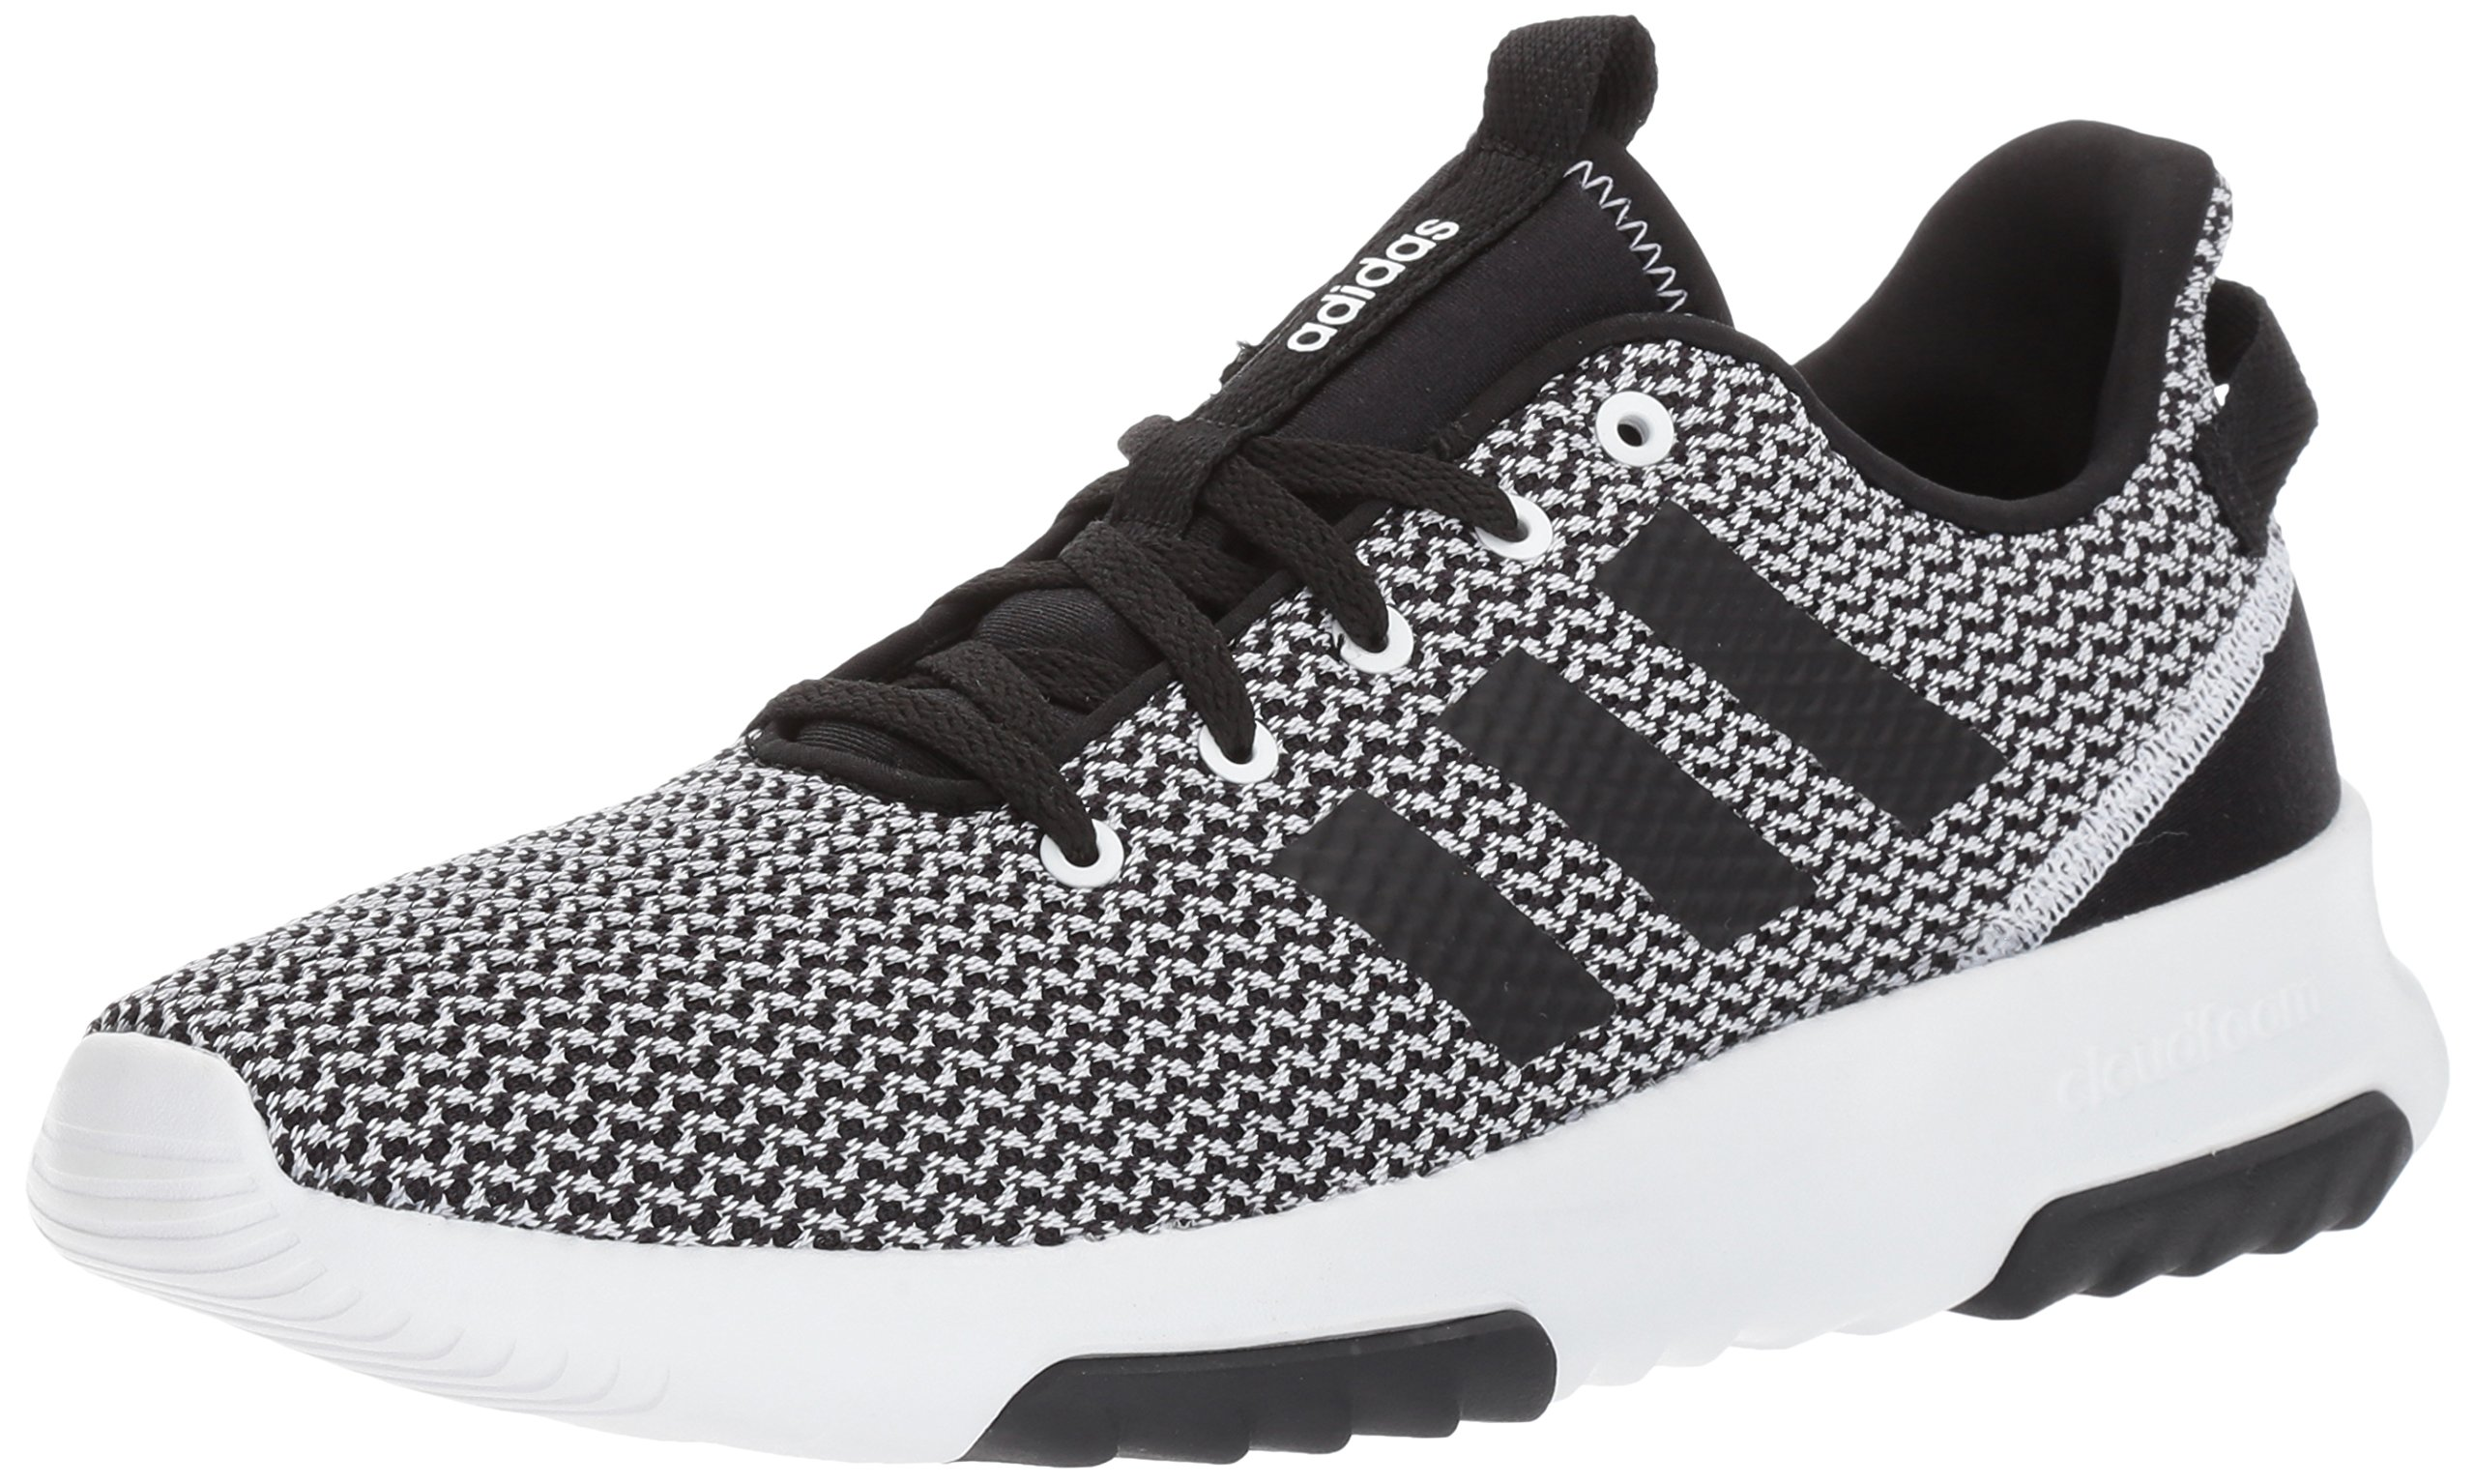 adidas Men's Cloudfoam Racer TR running Shoes, BlackWhite, (12 M US)